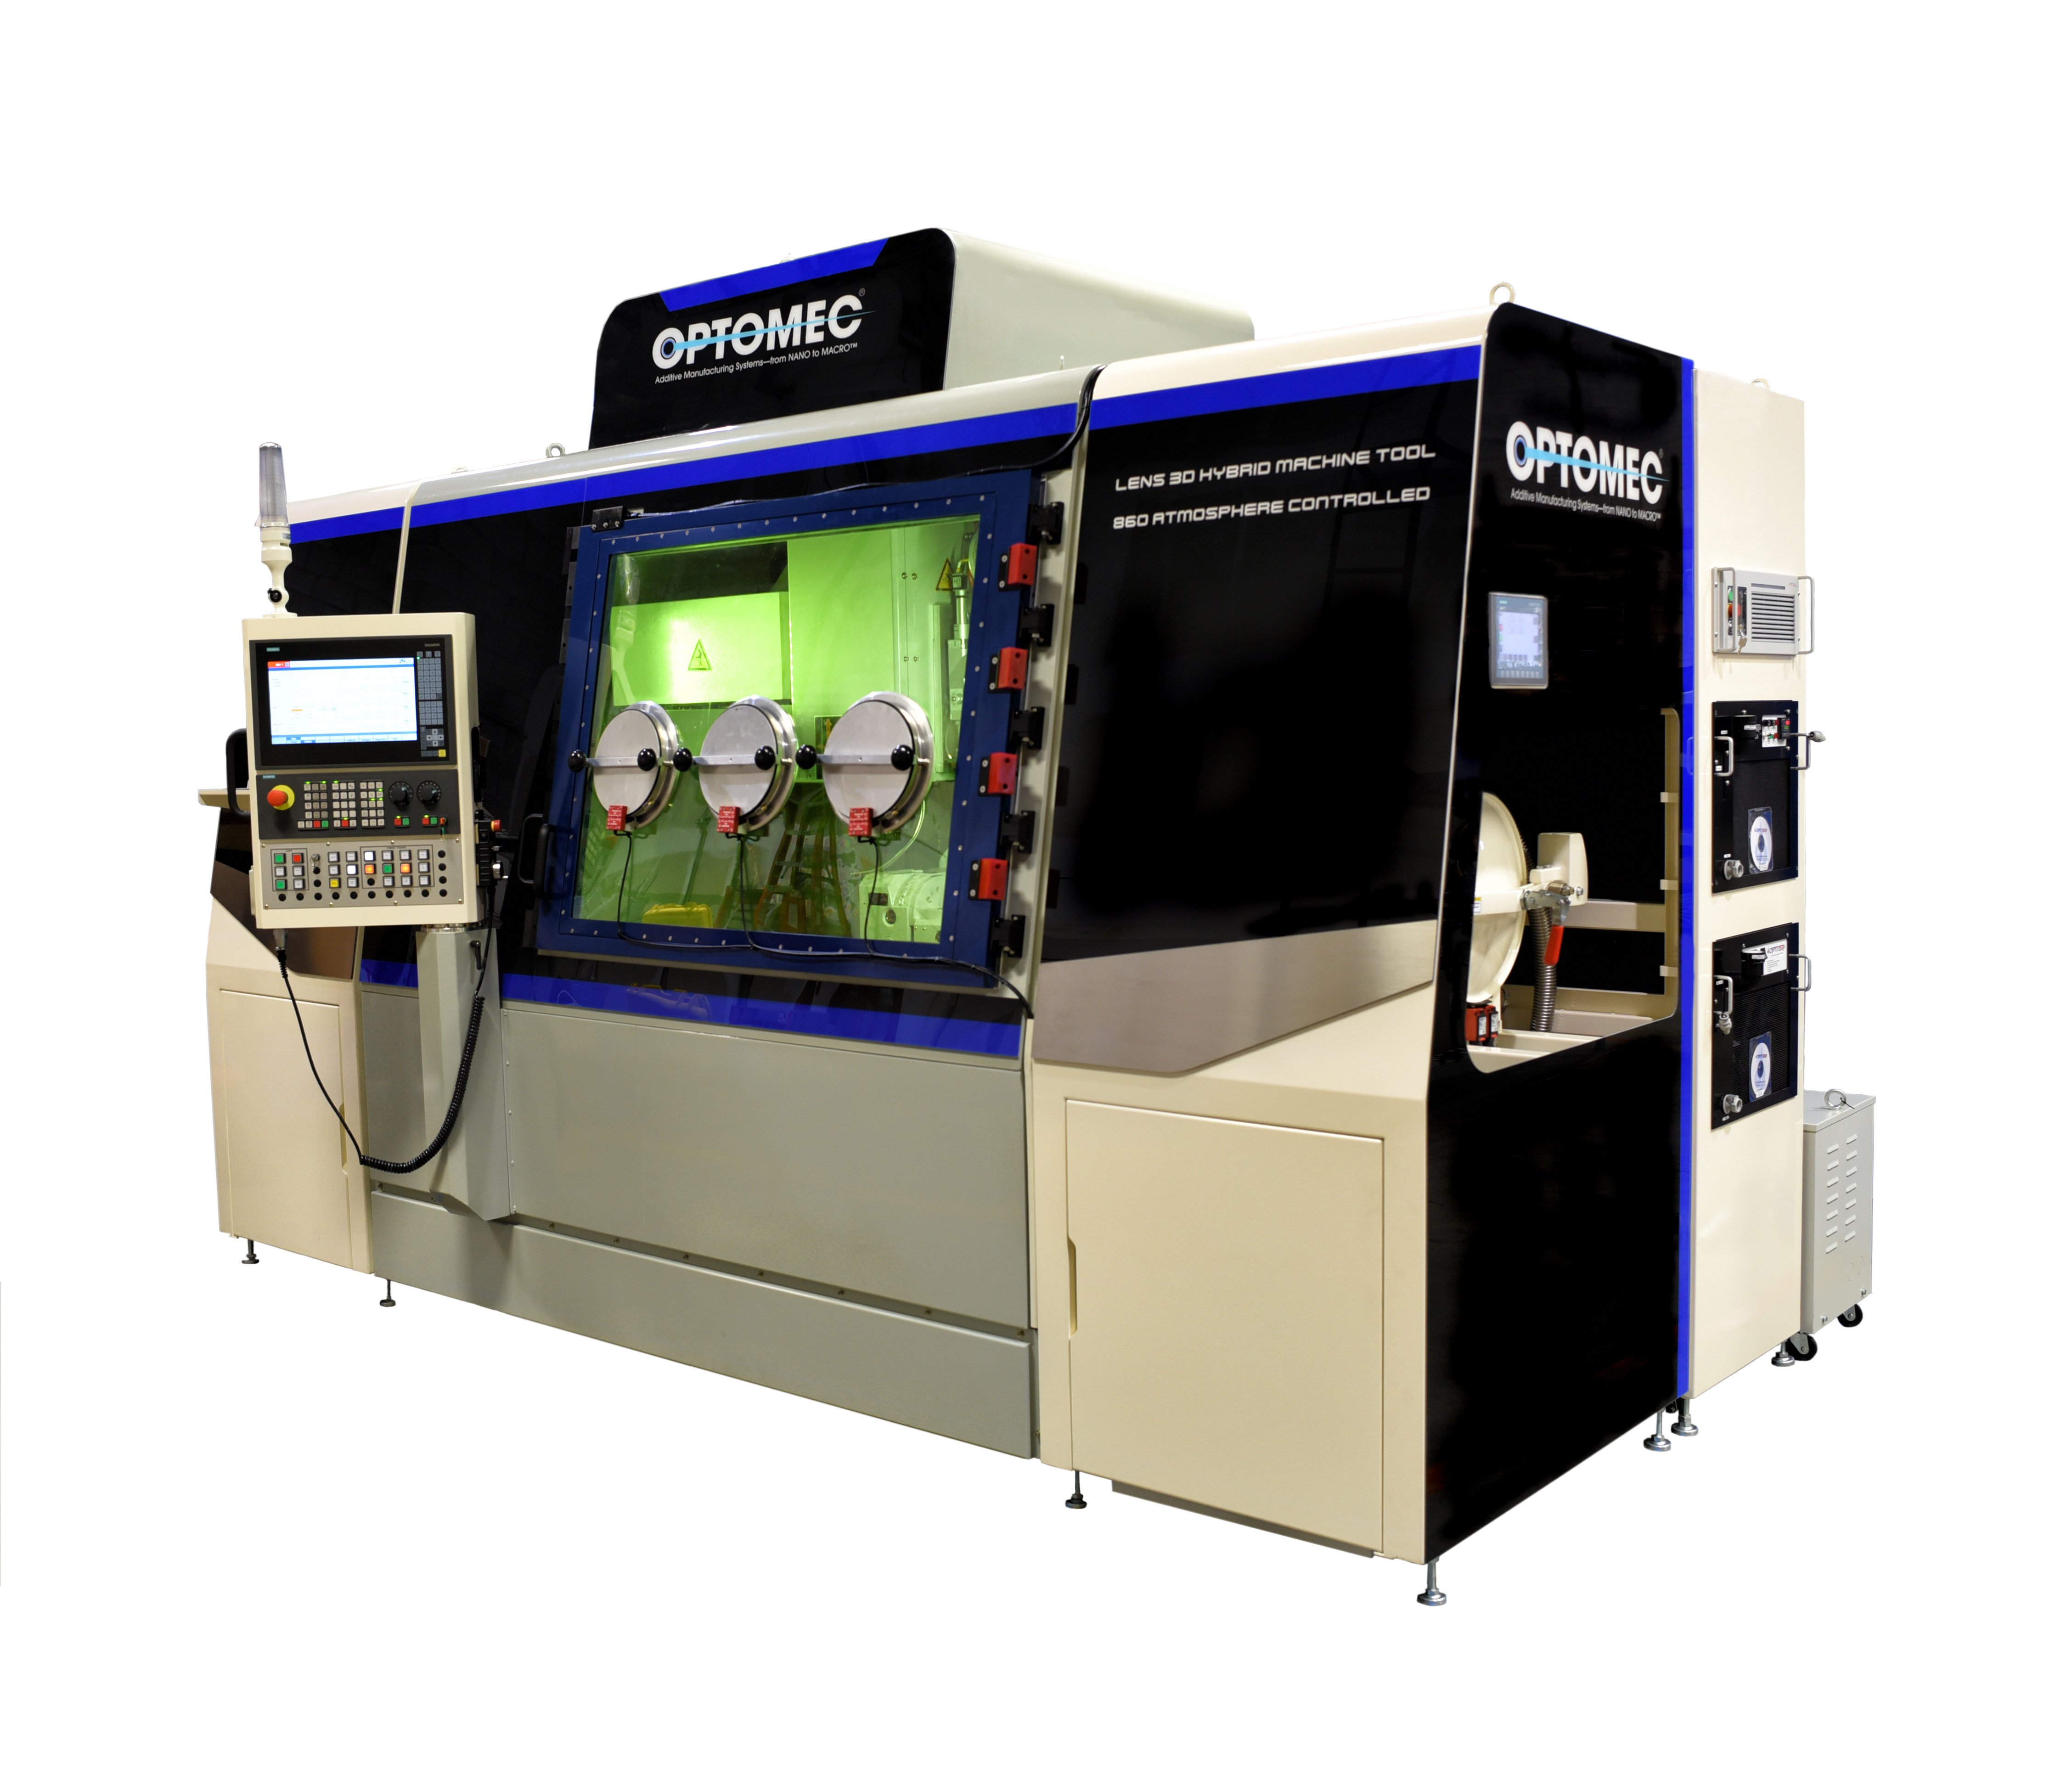 Additive Manufacturing Systems 3d Printing Electronics Metals Search Results For Quotindustrial Electronic Repair Sales 8009502349 Optomec Announces New Line Of Inexpensive Hybrid Metal Printers